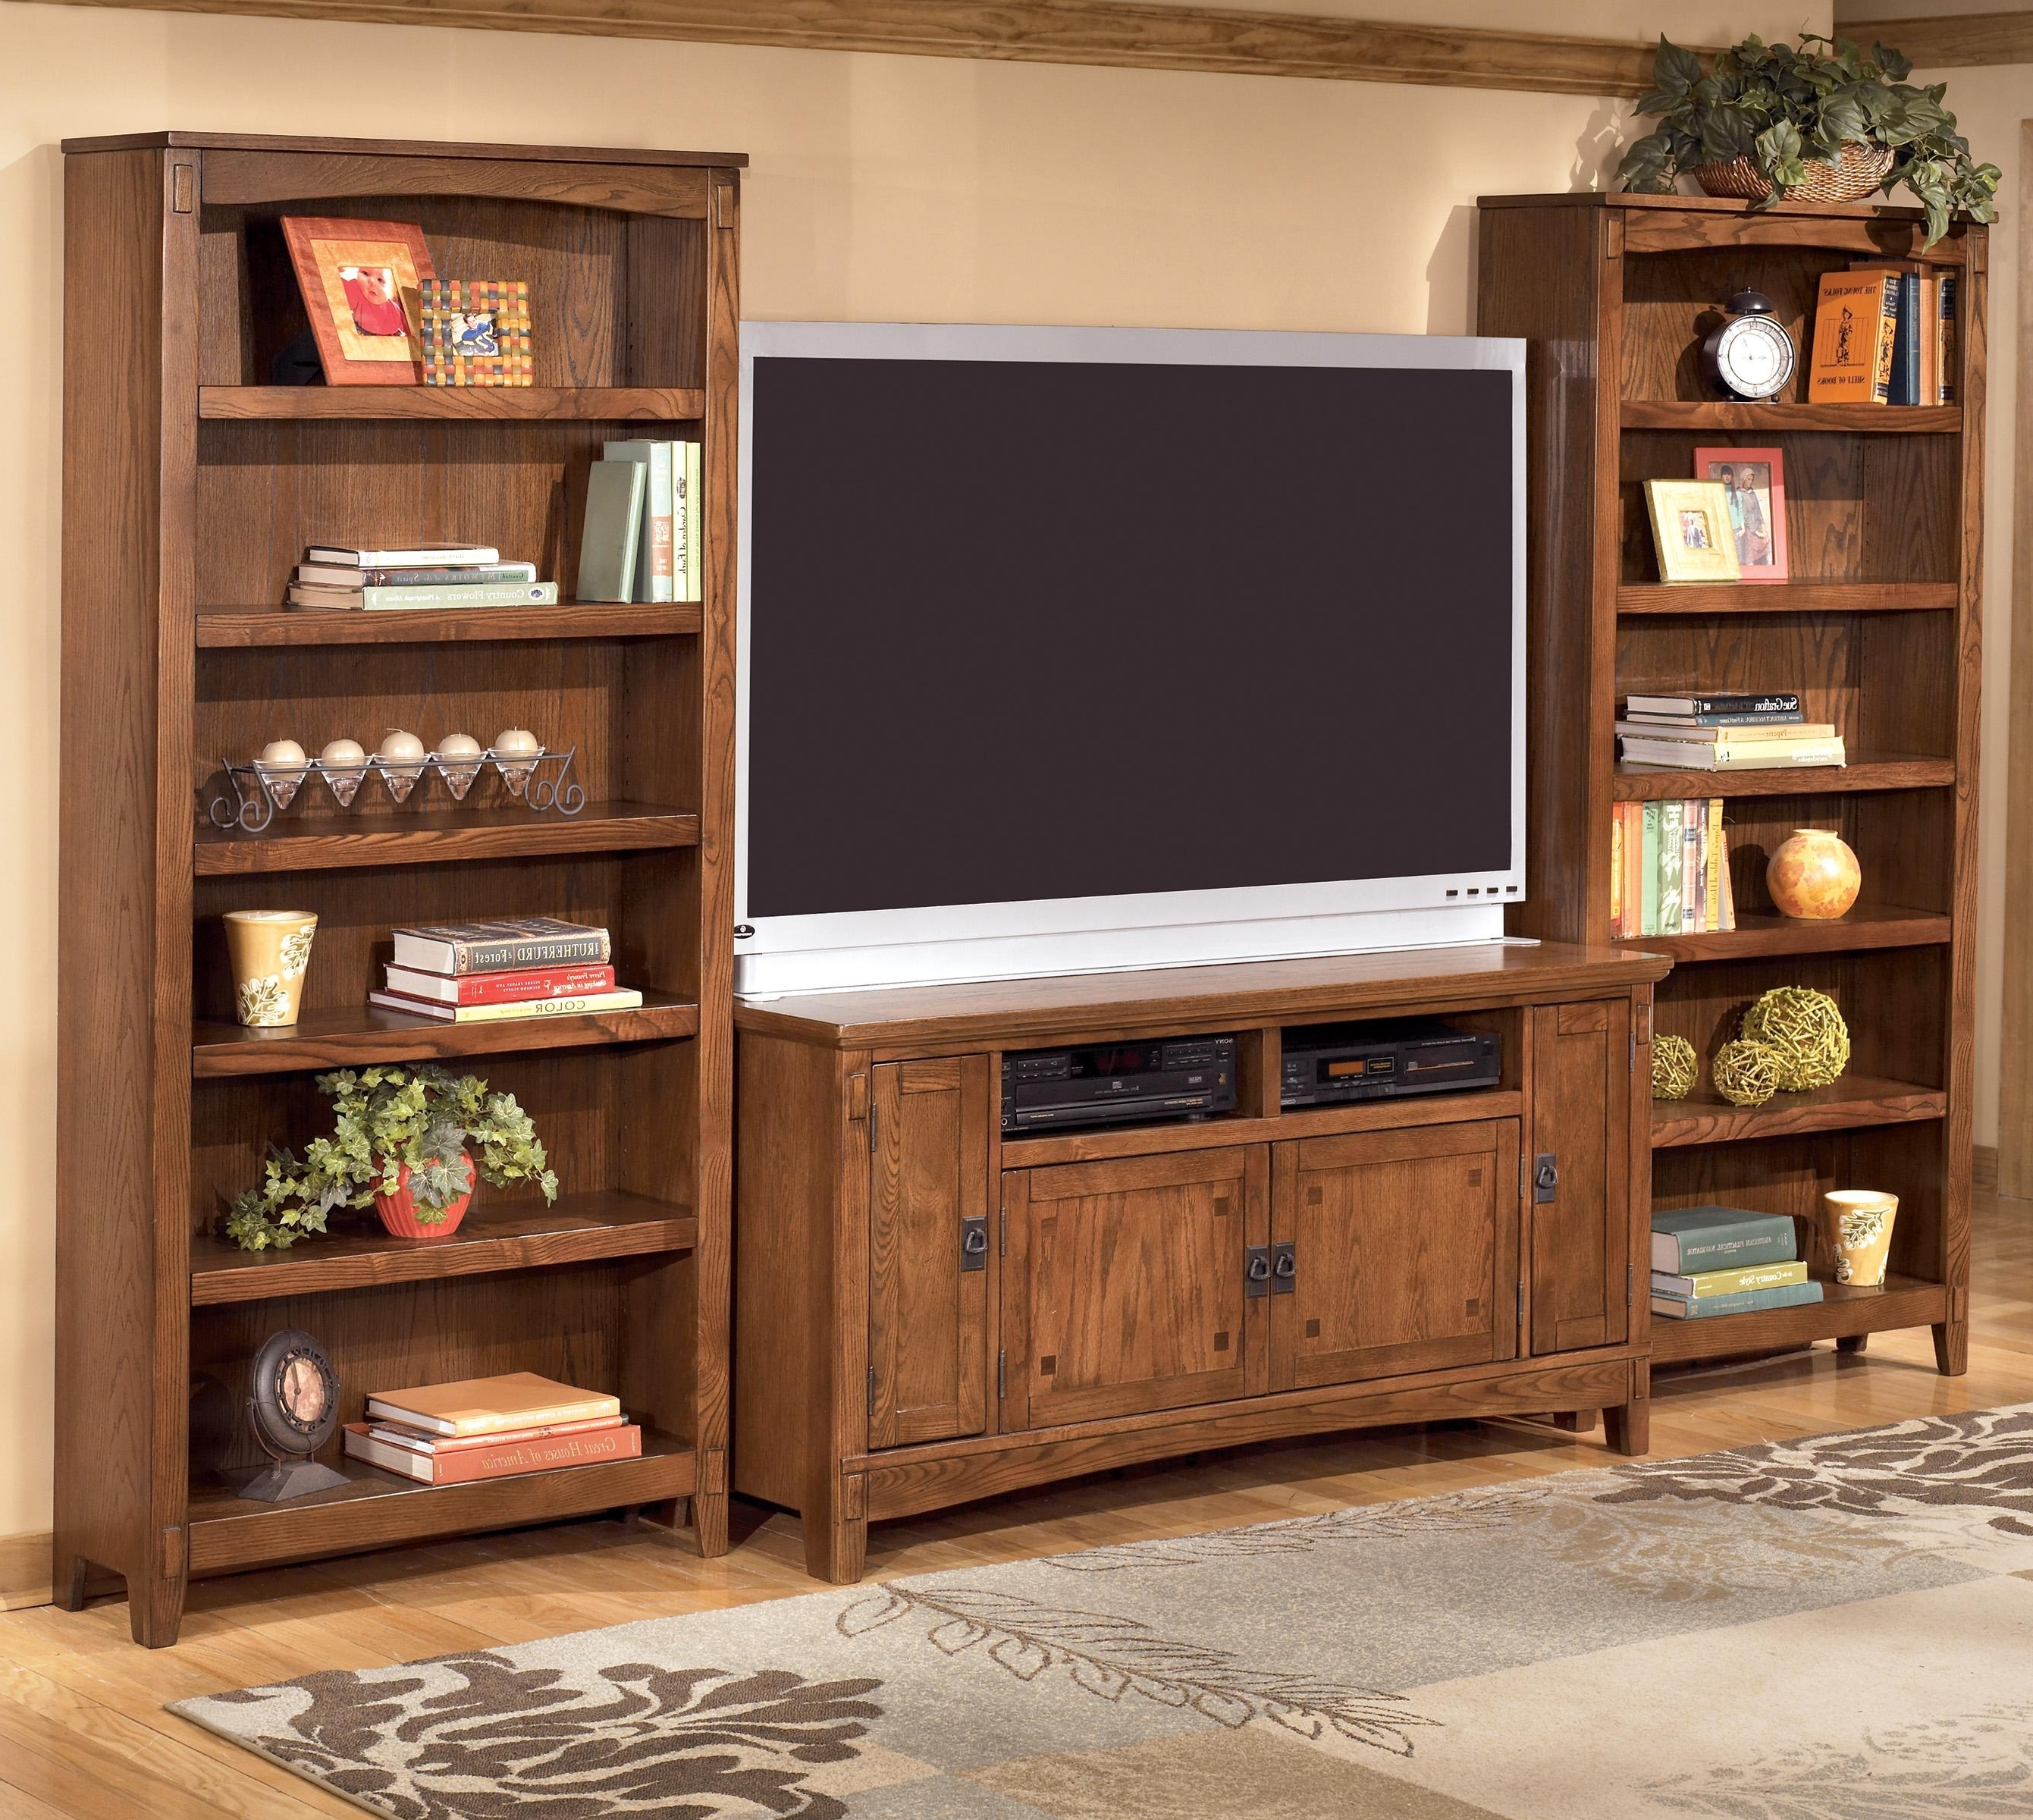 60 Inch Tv Stand & 2 Large Bookcasesashley Furniture (View 9 of 15)